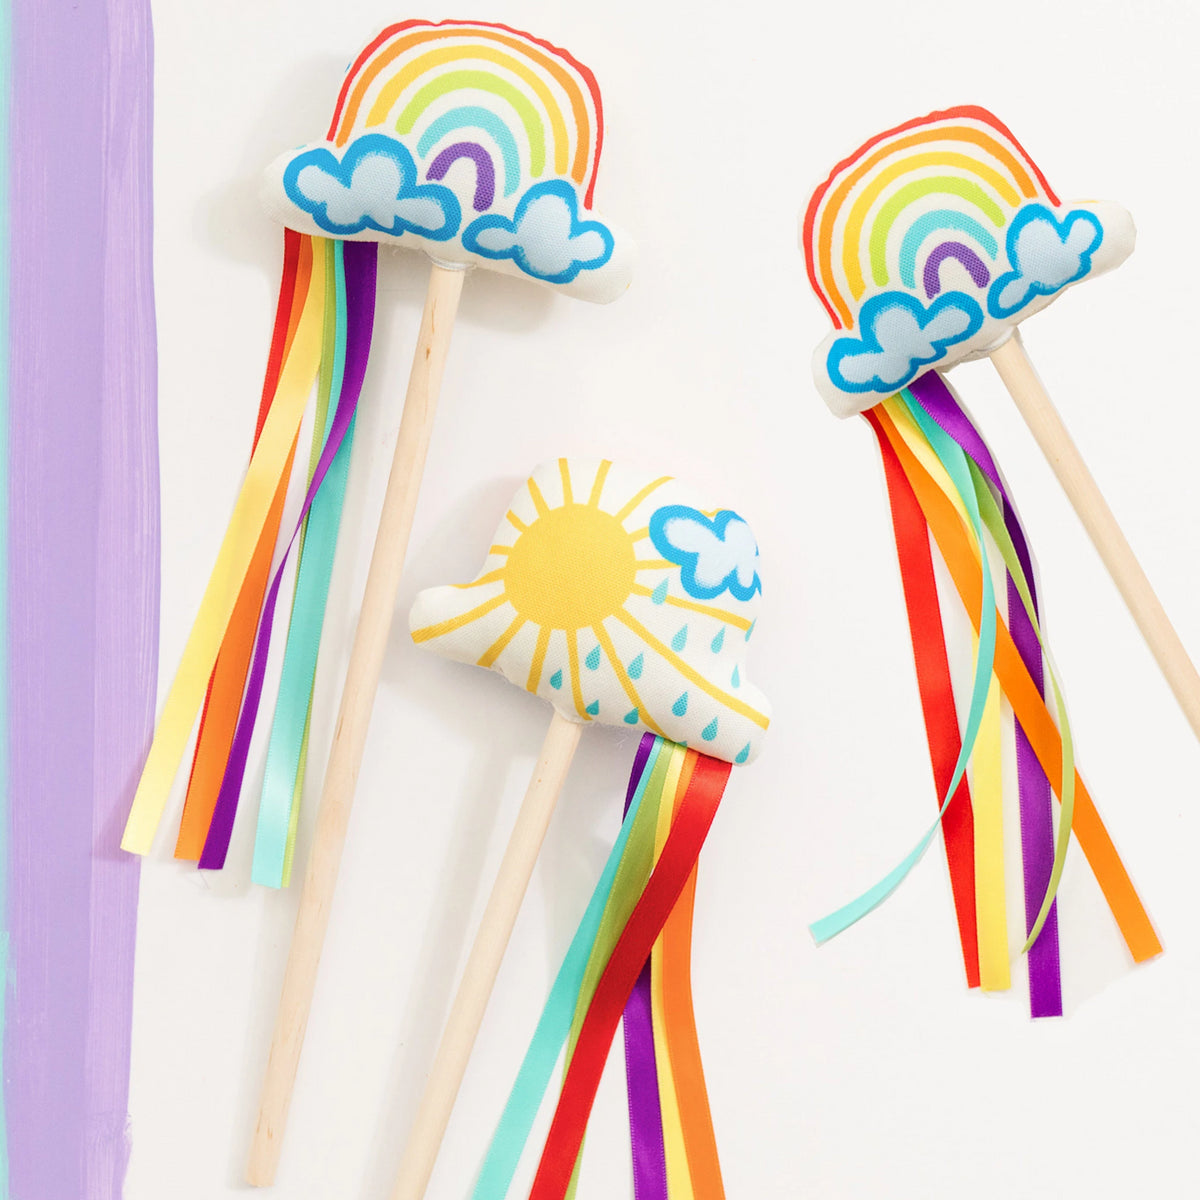 Set of 3 Rainbow Wands, Rainbow Birthday Party, Rainbow Party Favors, Toddler Magic Wand, Rainbow Dress Up Costume, Rainbow Gift